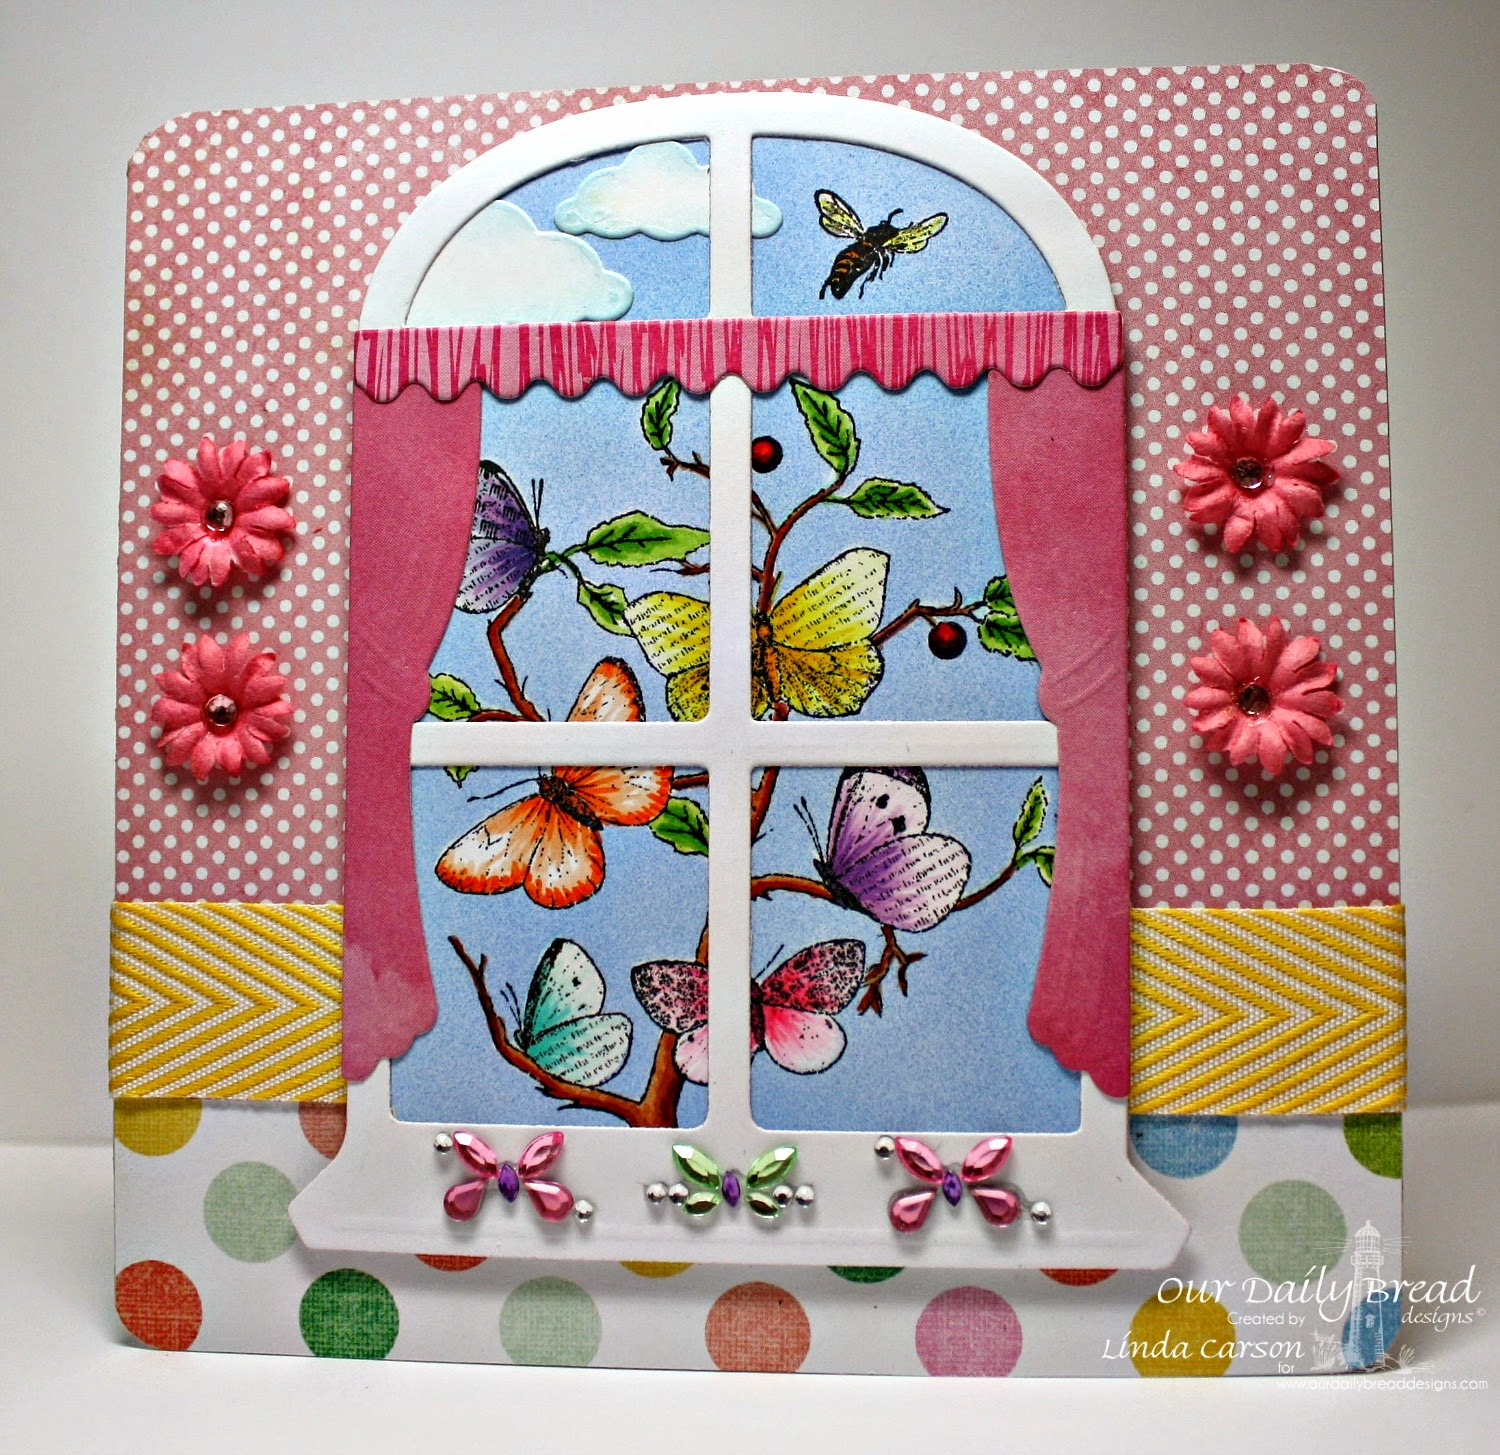 ODBD, Window die, Faith stamps, designer Linda Carson